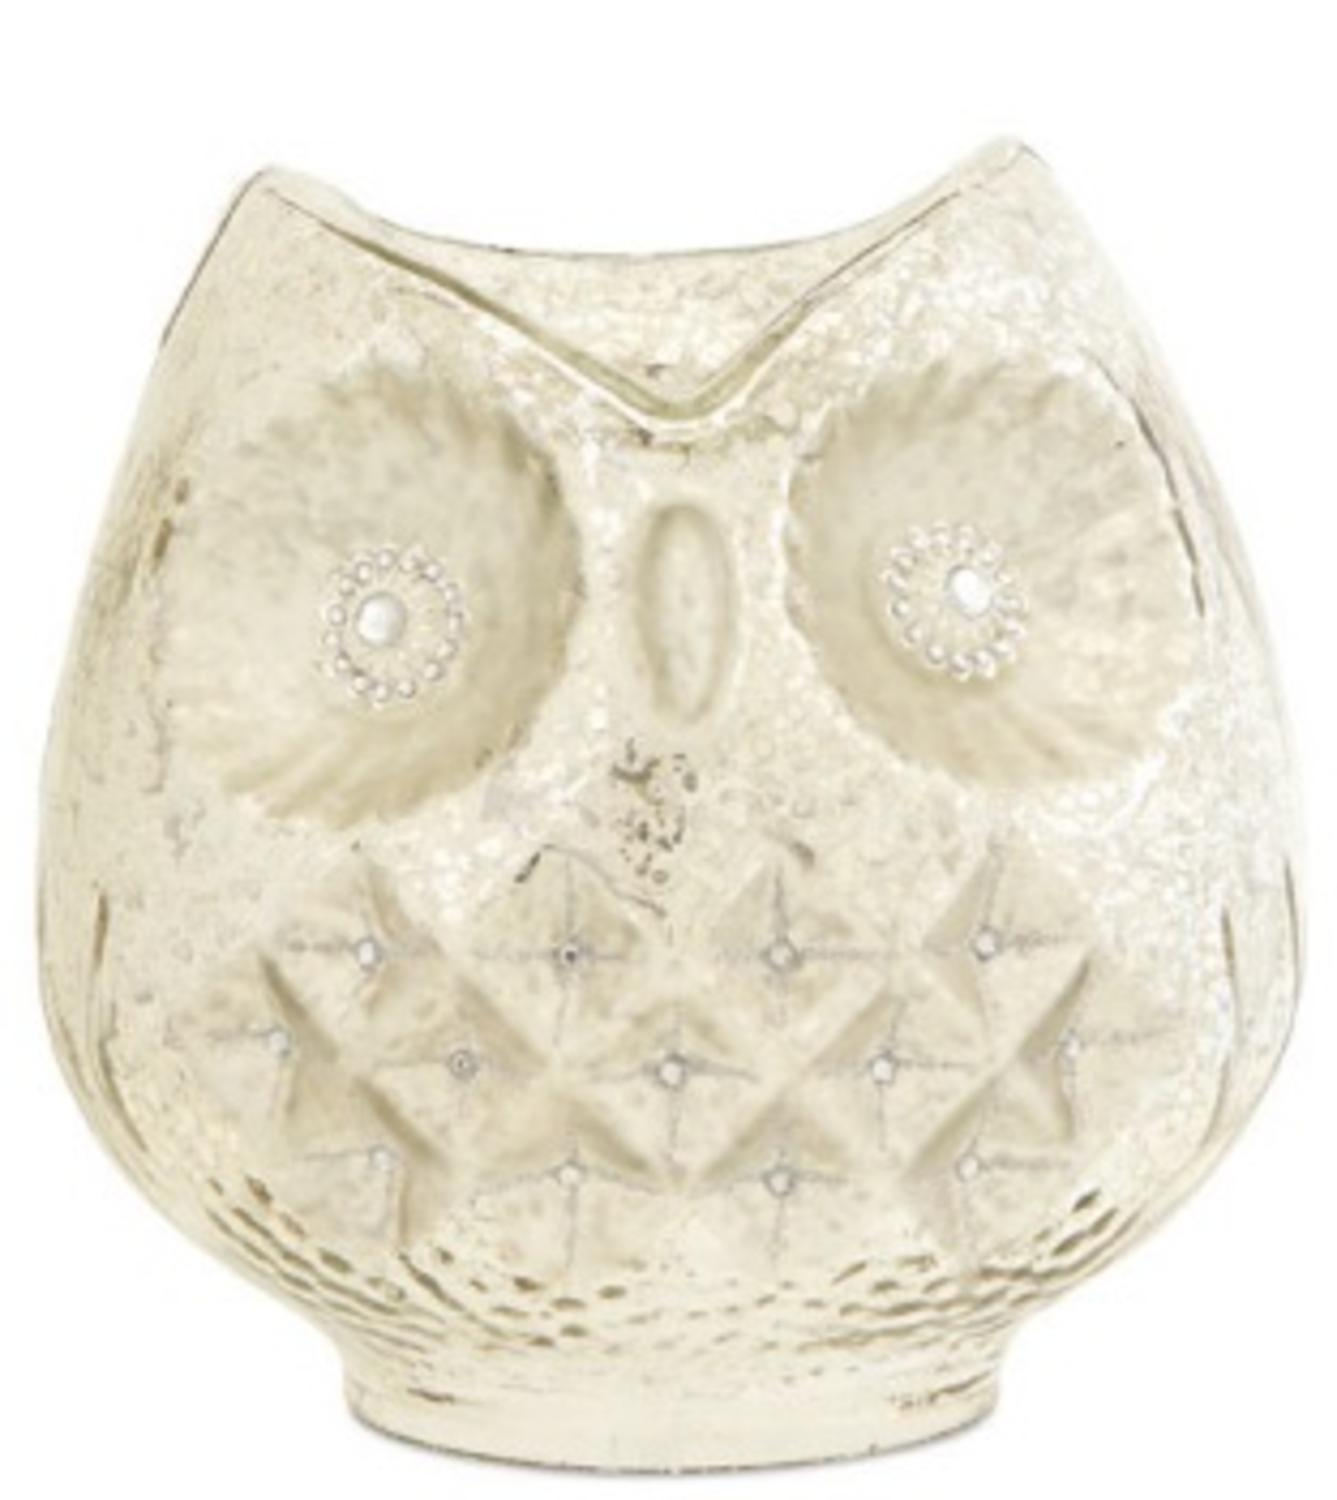 "8"" White and Silver Woodland Creature Mercury Glass Owl Bird Pillar Candle Holder"